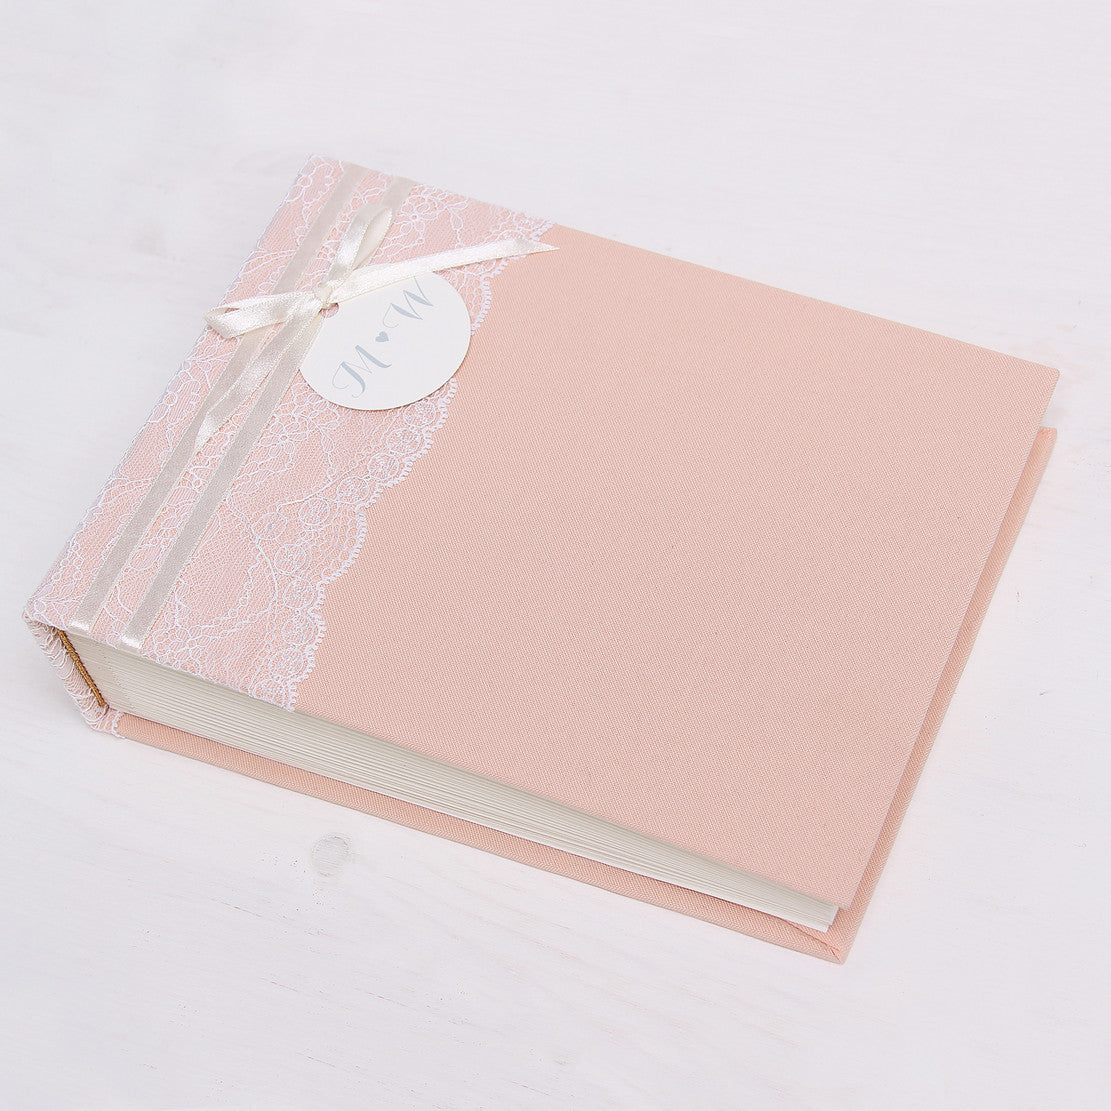 Instax Guest Book Wedding Album Instant Pink with Lace Names in First Page by Liumy - Liumy